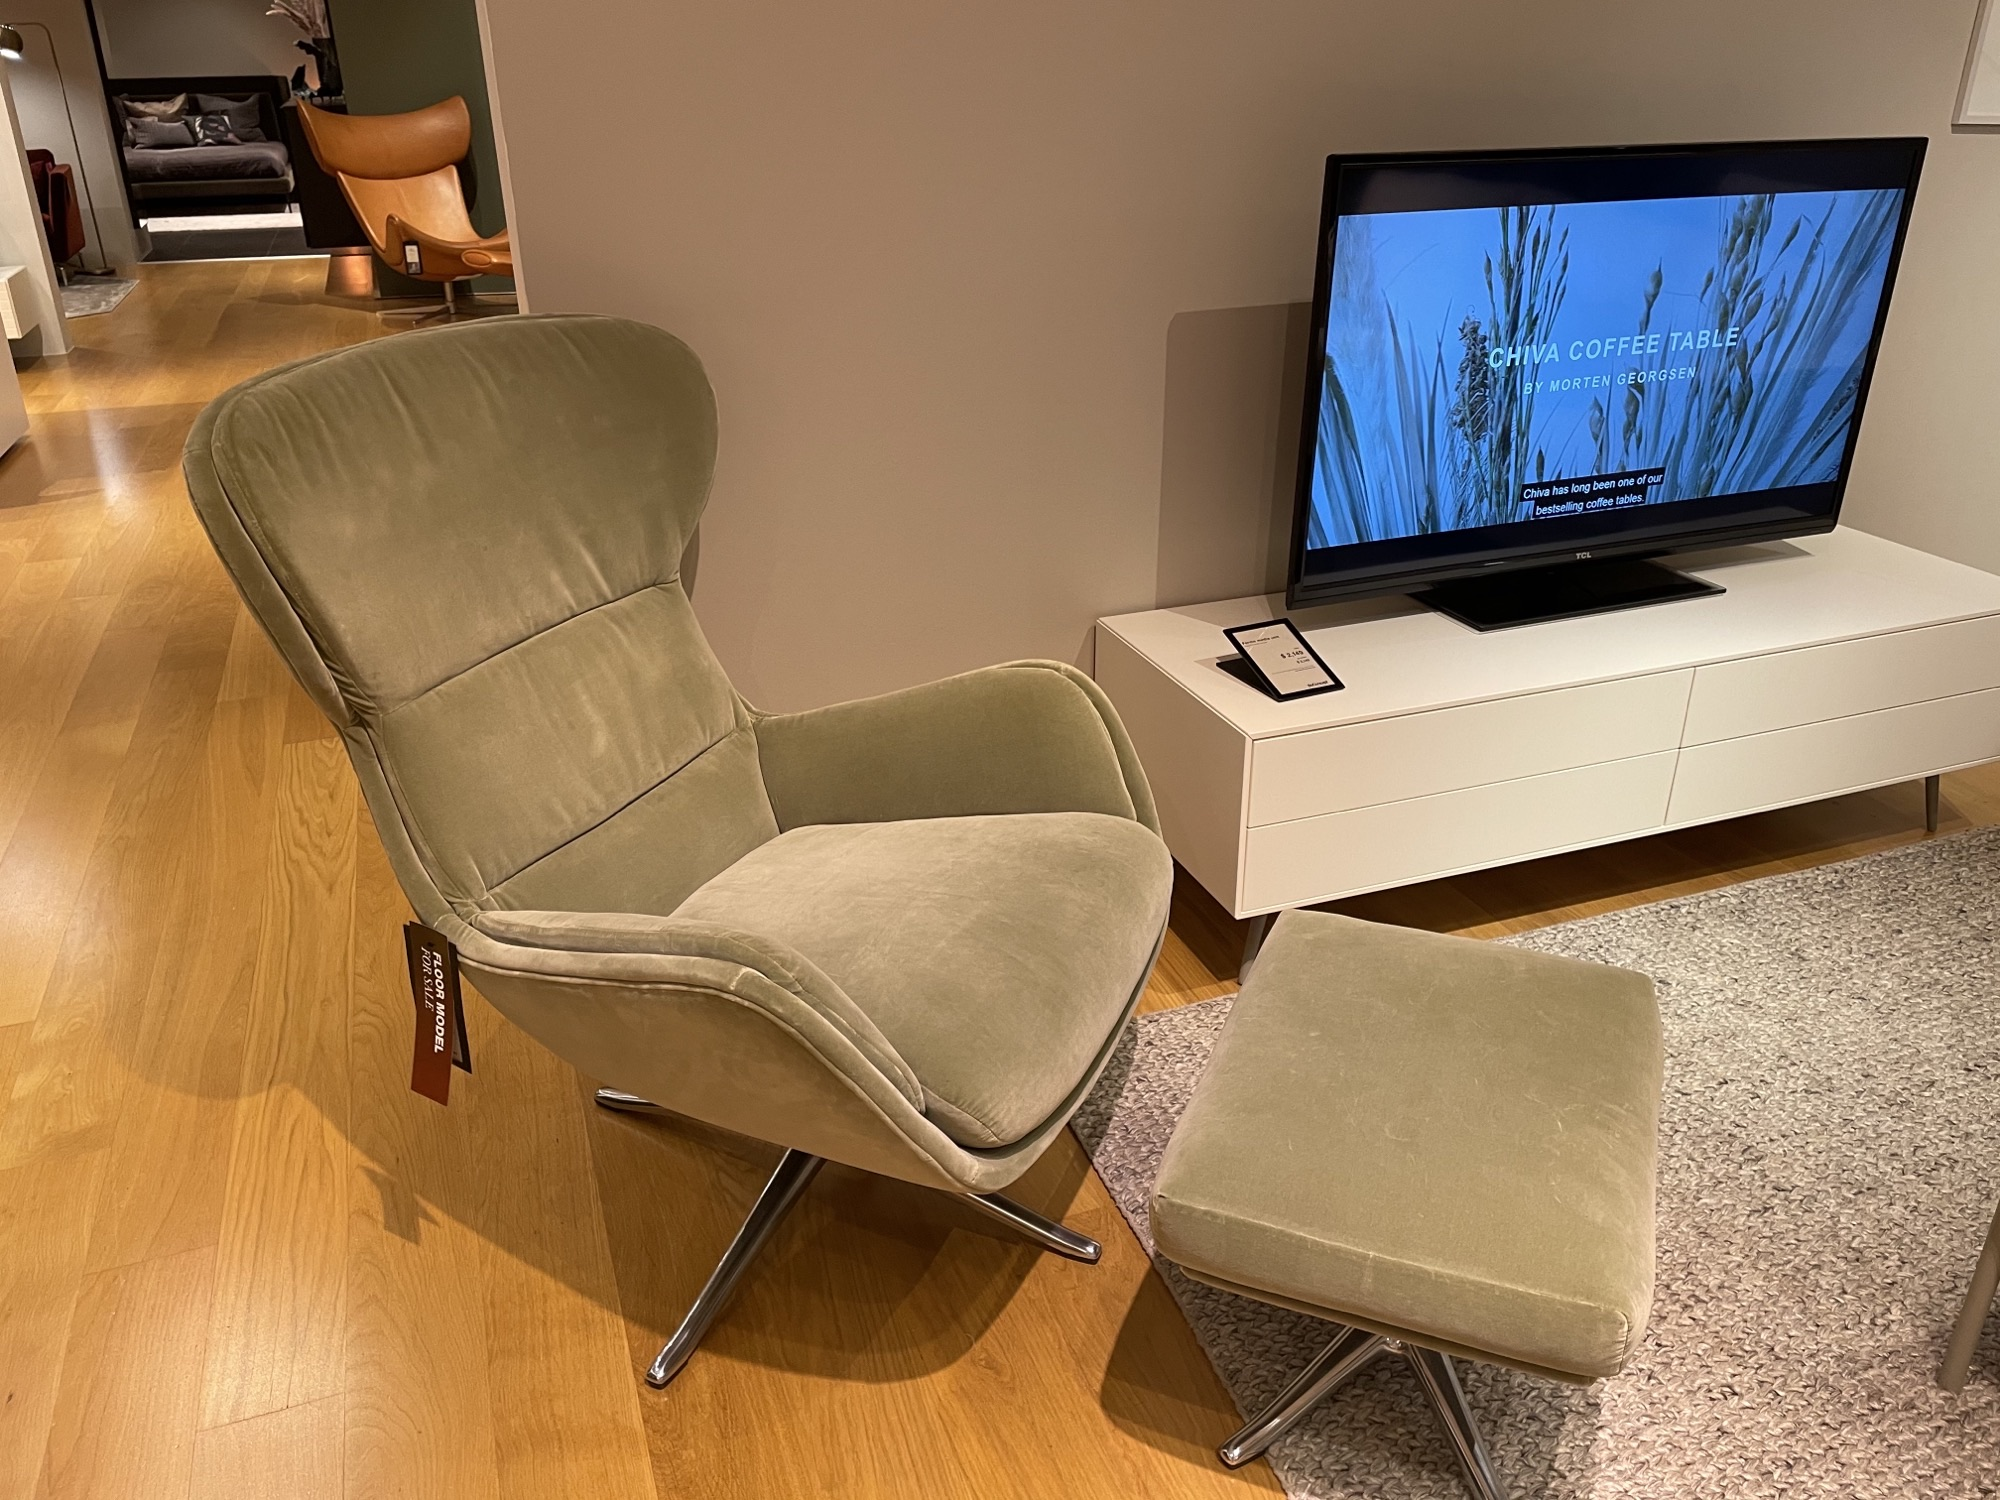 Reno chair with footstool